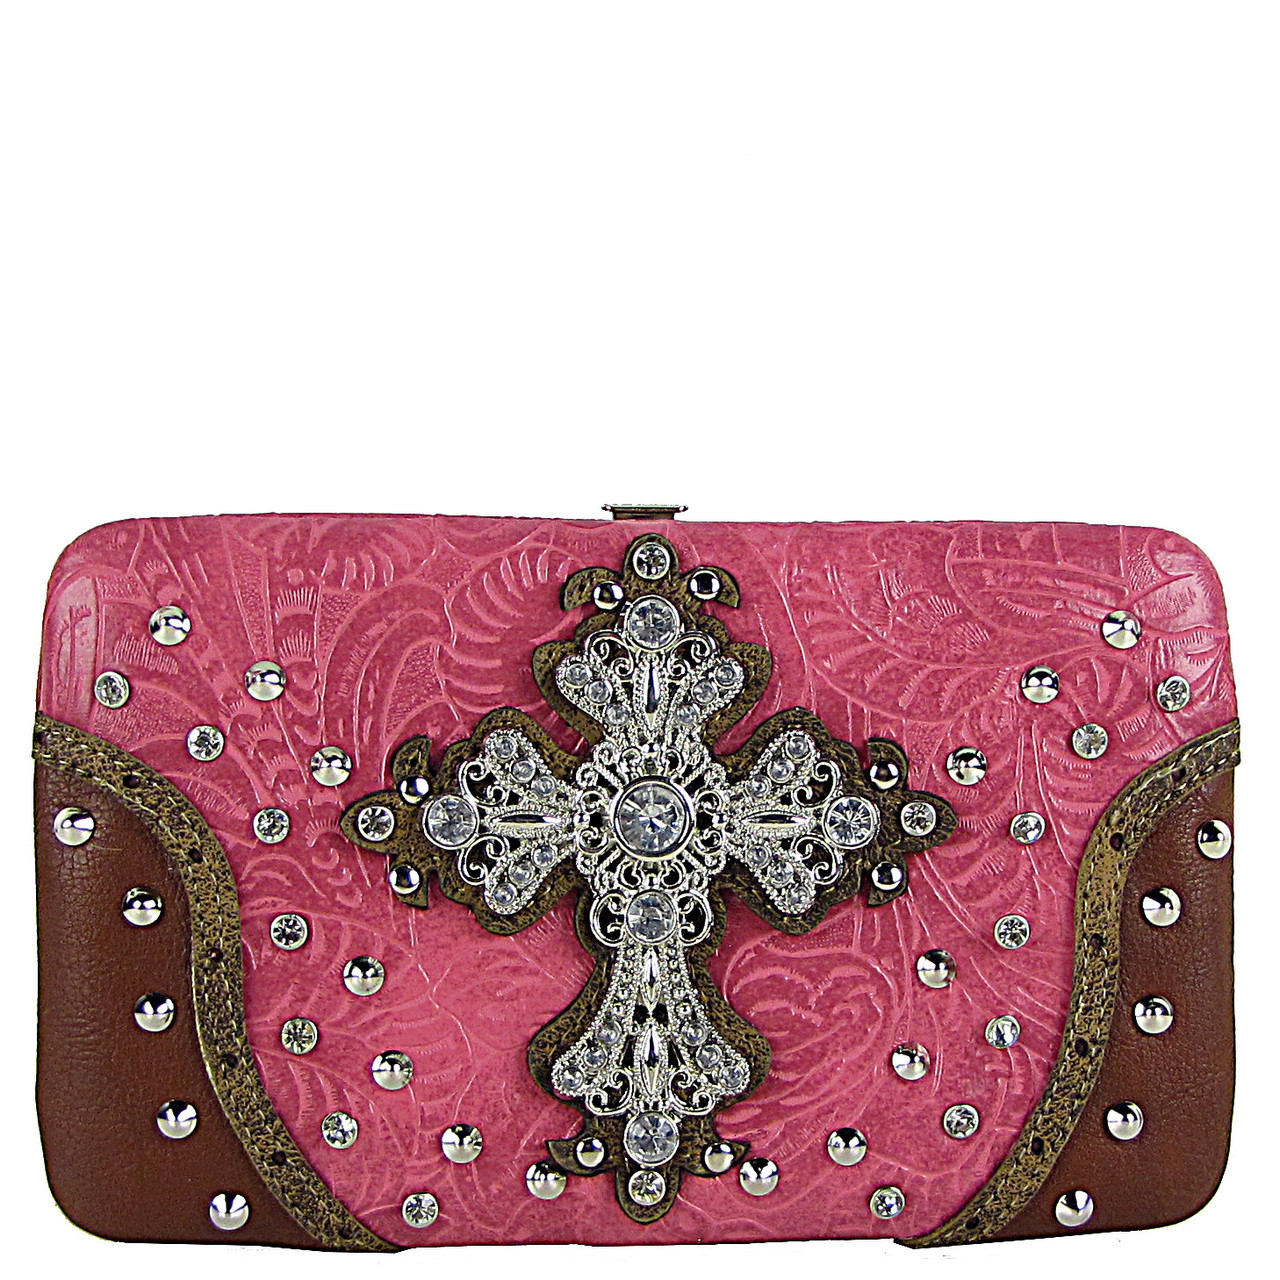 HOT PINK RHINESTONE STUDDED CROSS FLAT THICK WALLET FW2-04115HPK